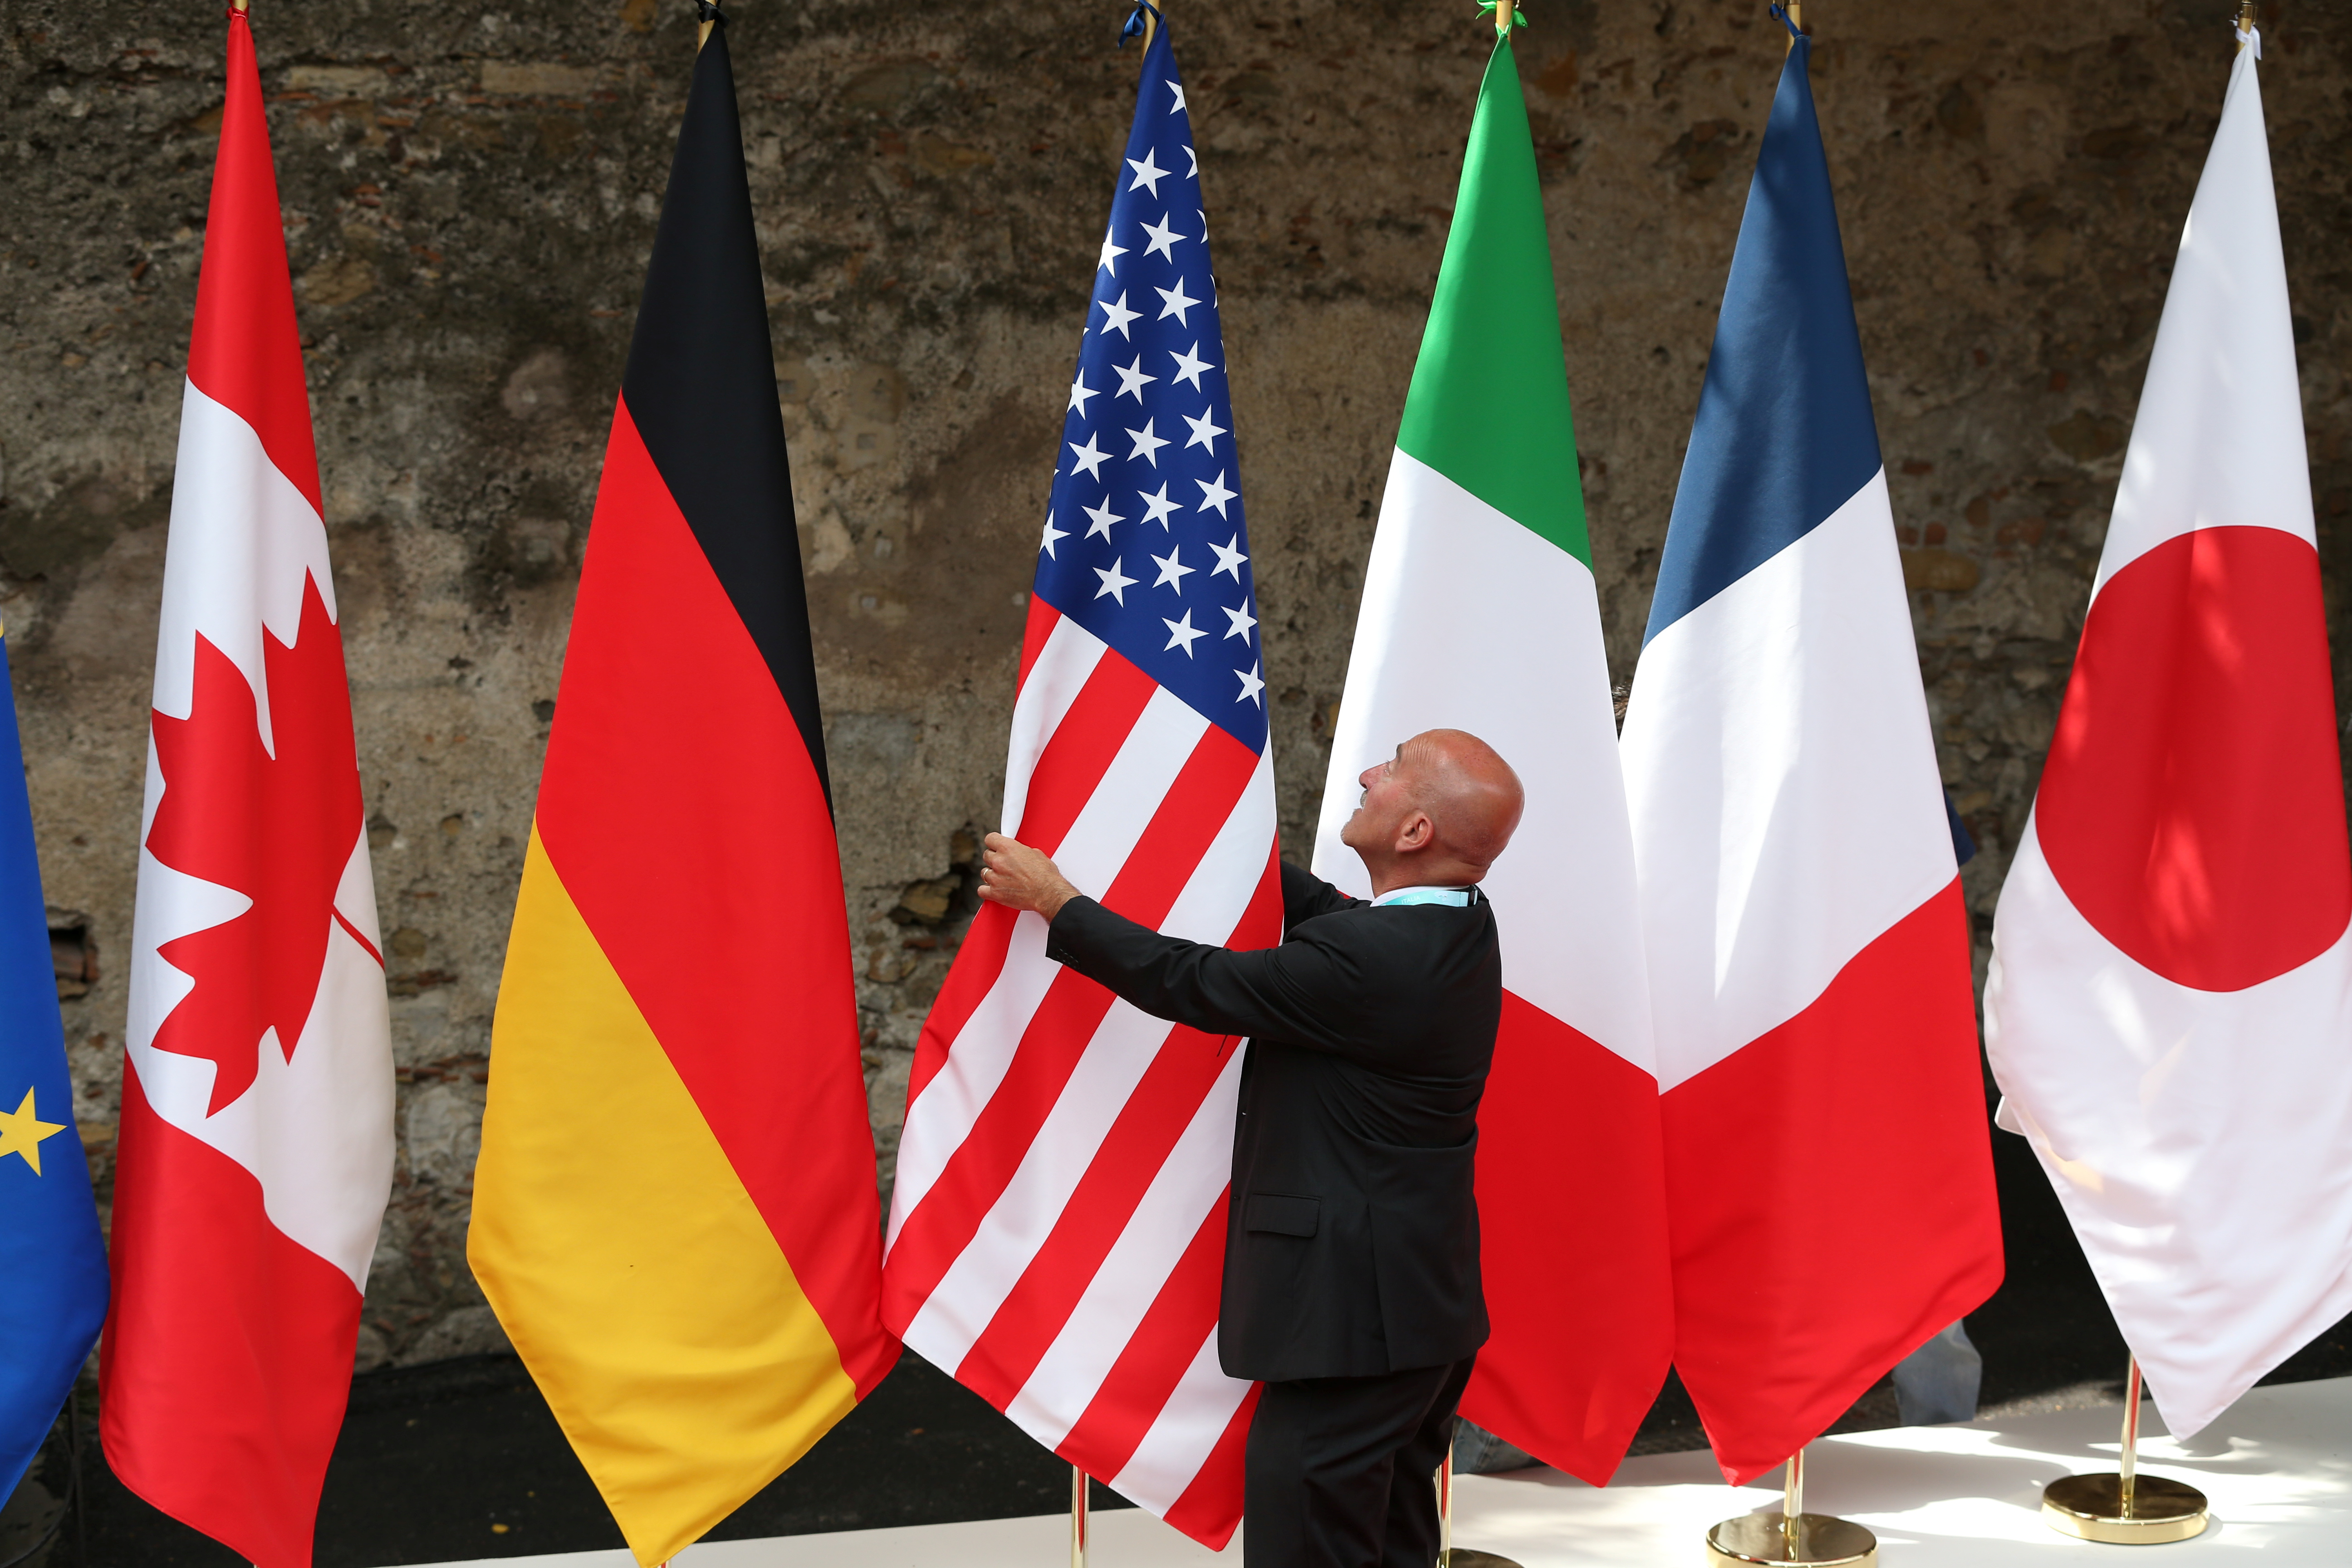 Advancing multilateralism in a populist age